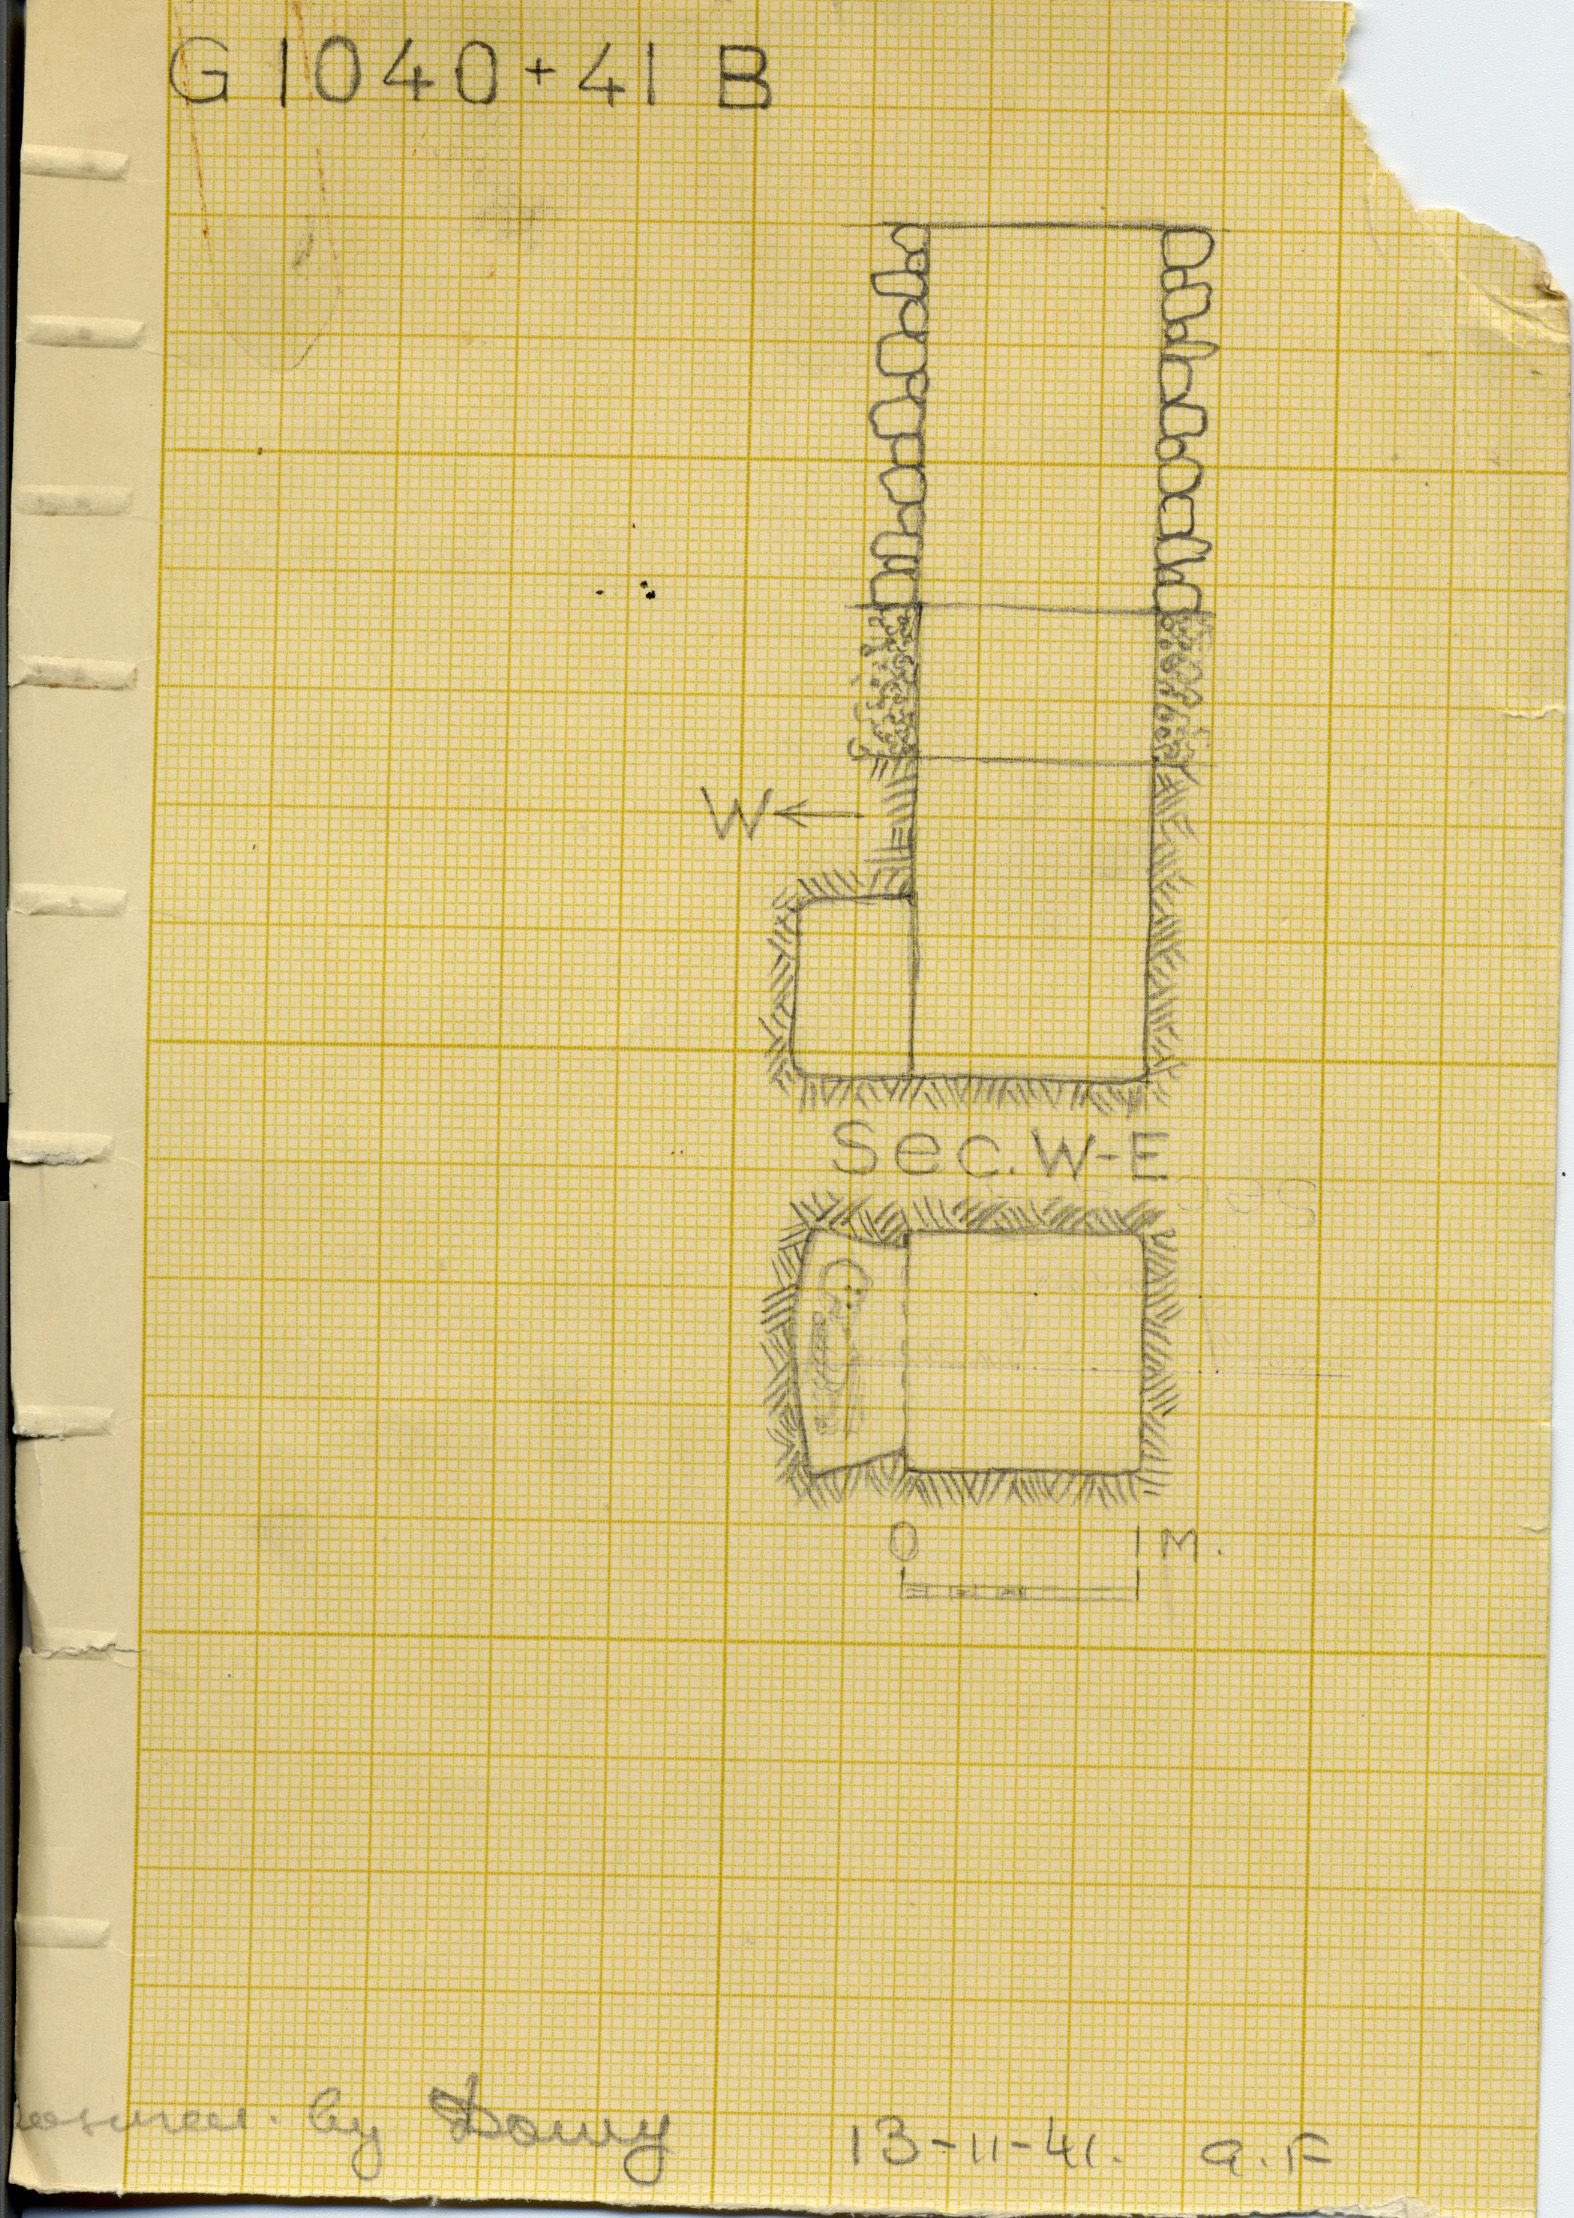 Maps and plans: G 1040+1041, Shaft B